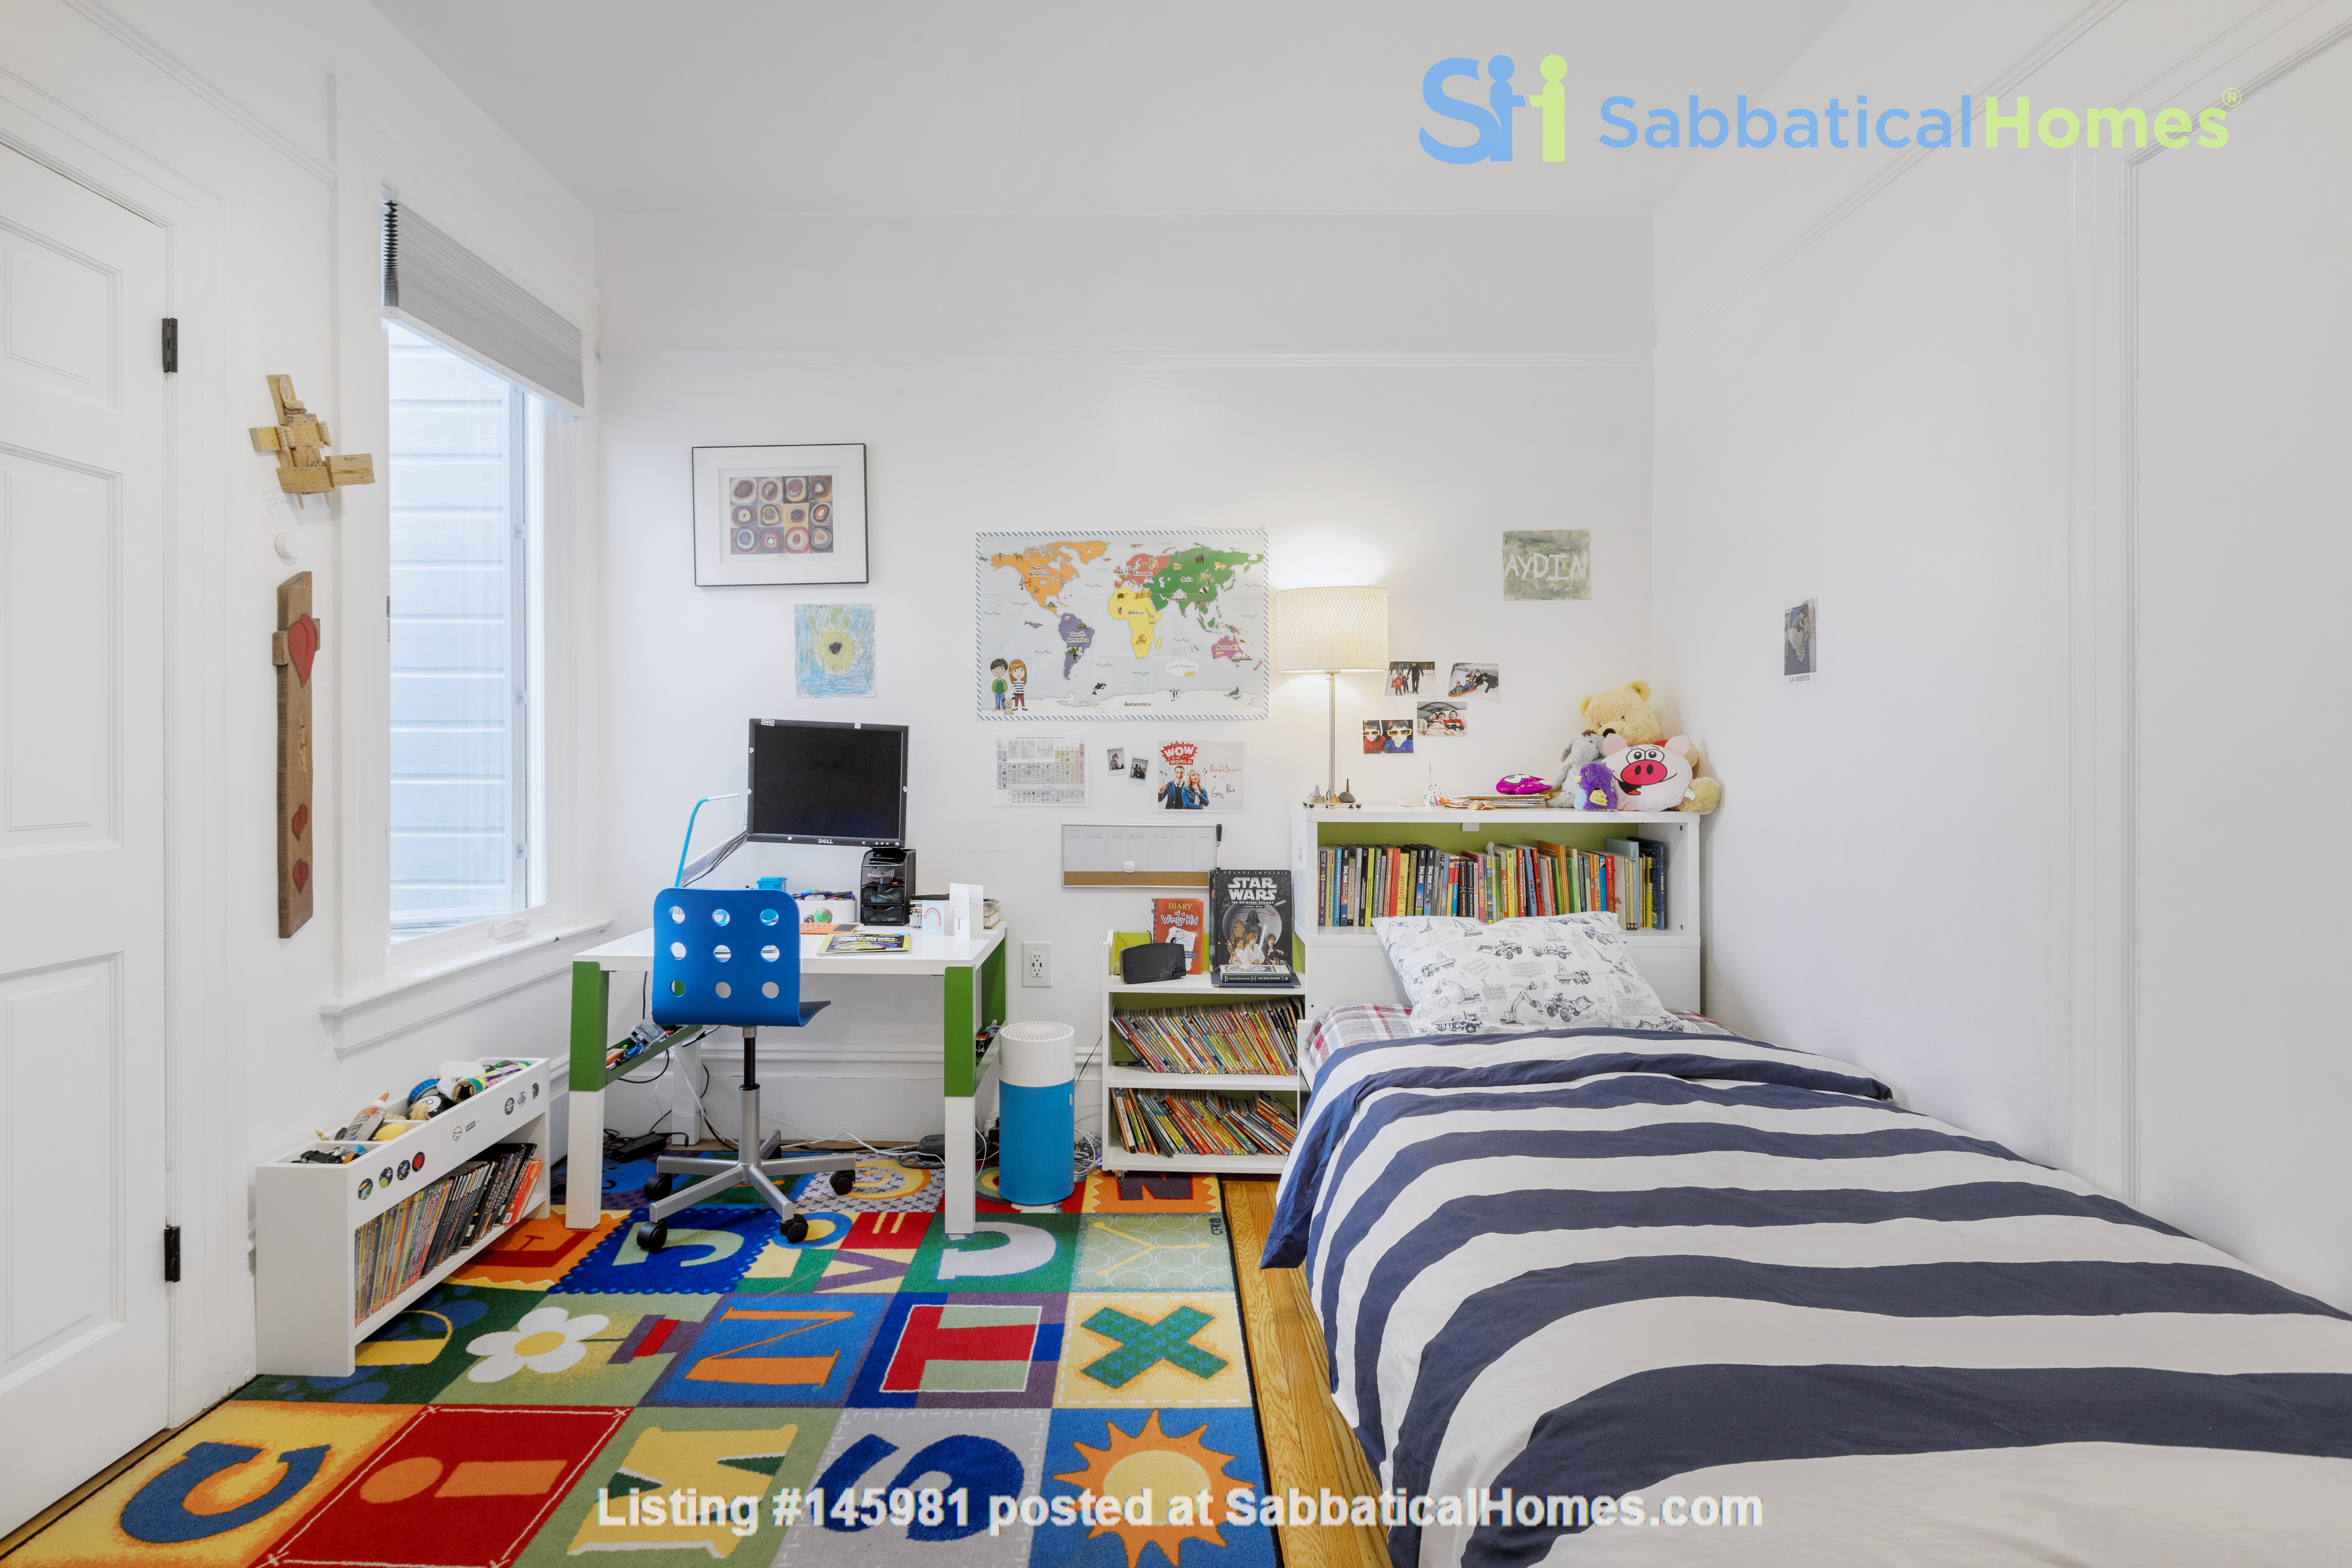 Charming Family Home in San Francisco Home Rental in SF 4